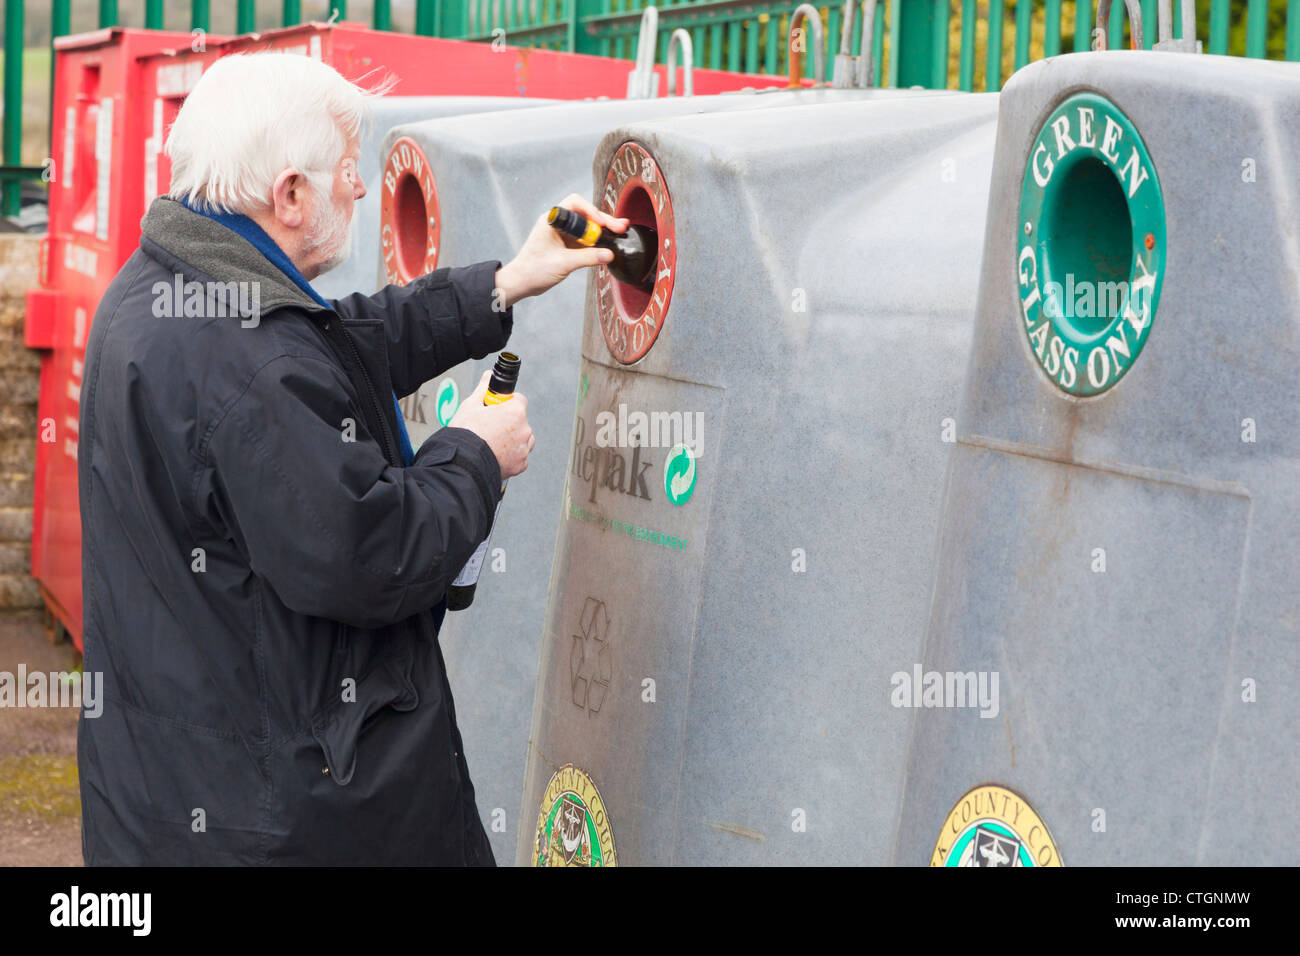 Dunmanyway, County Cork, Ireland. Elderly man dropping bottles into bottle bank at recycling centre. - Stock Image